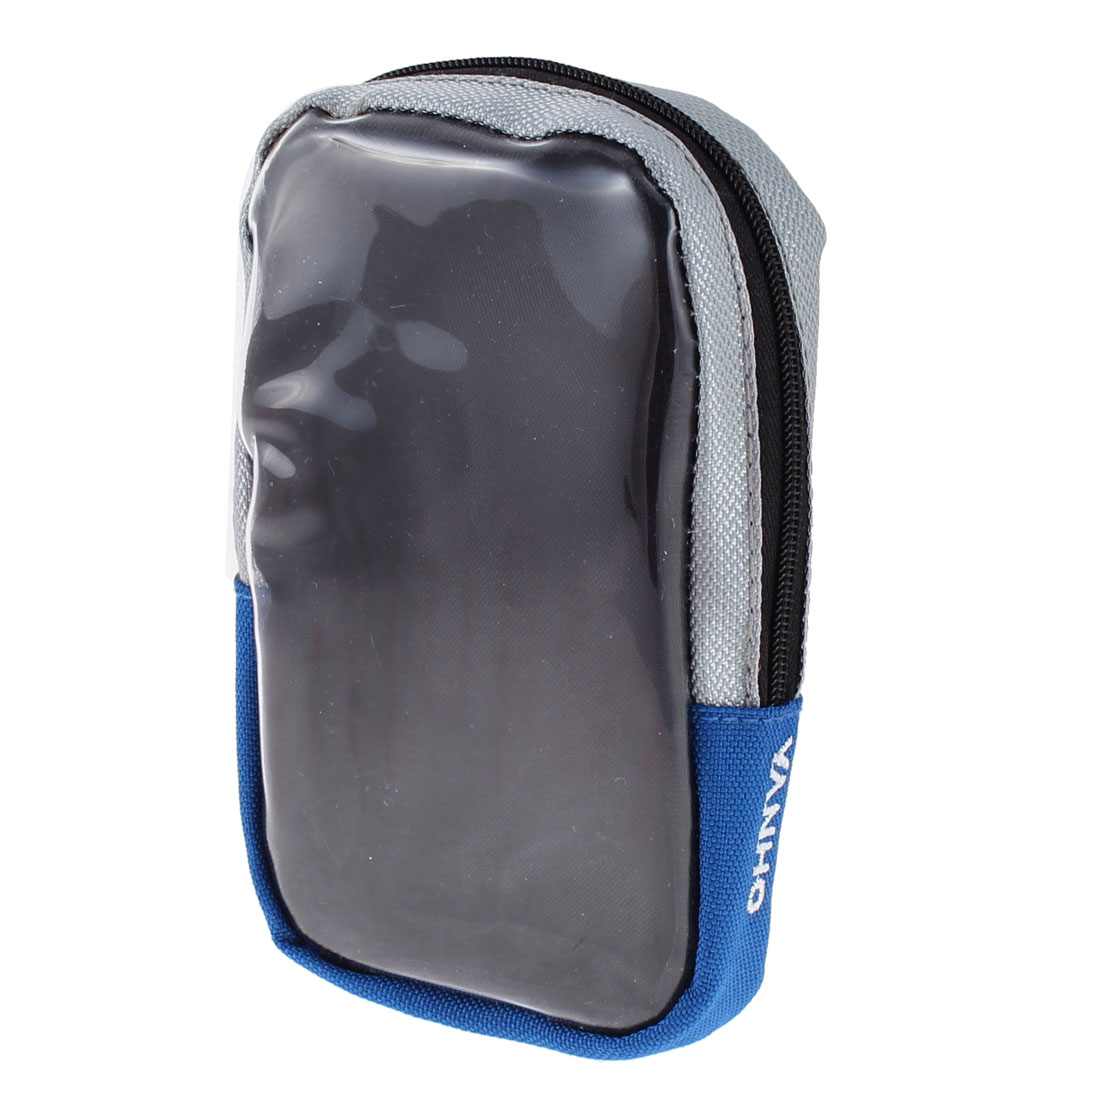 Cycling Bike Bicycle Frame Tube Bag Cellphone Pouch Case Holder